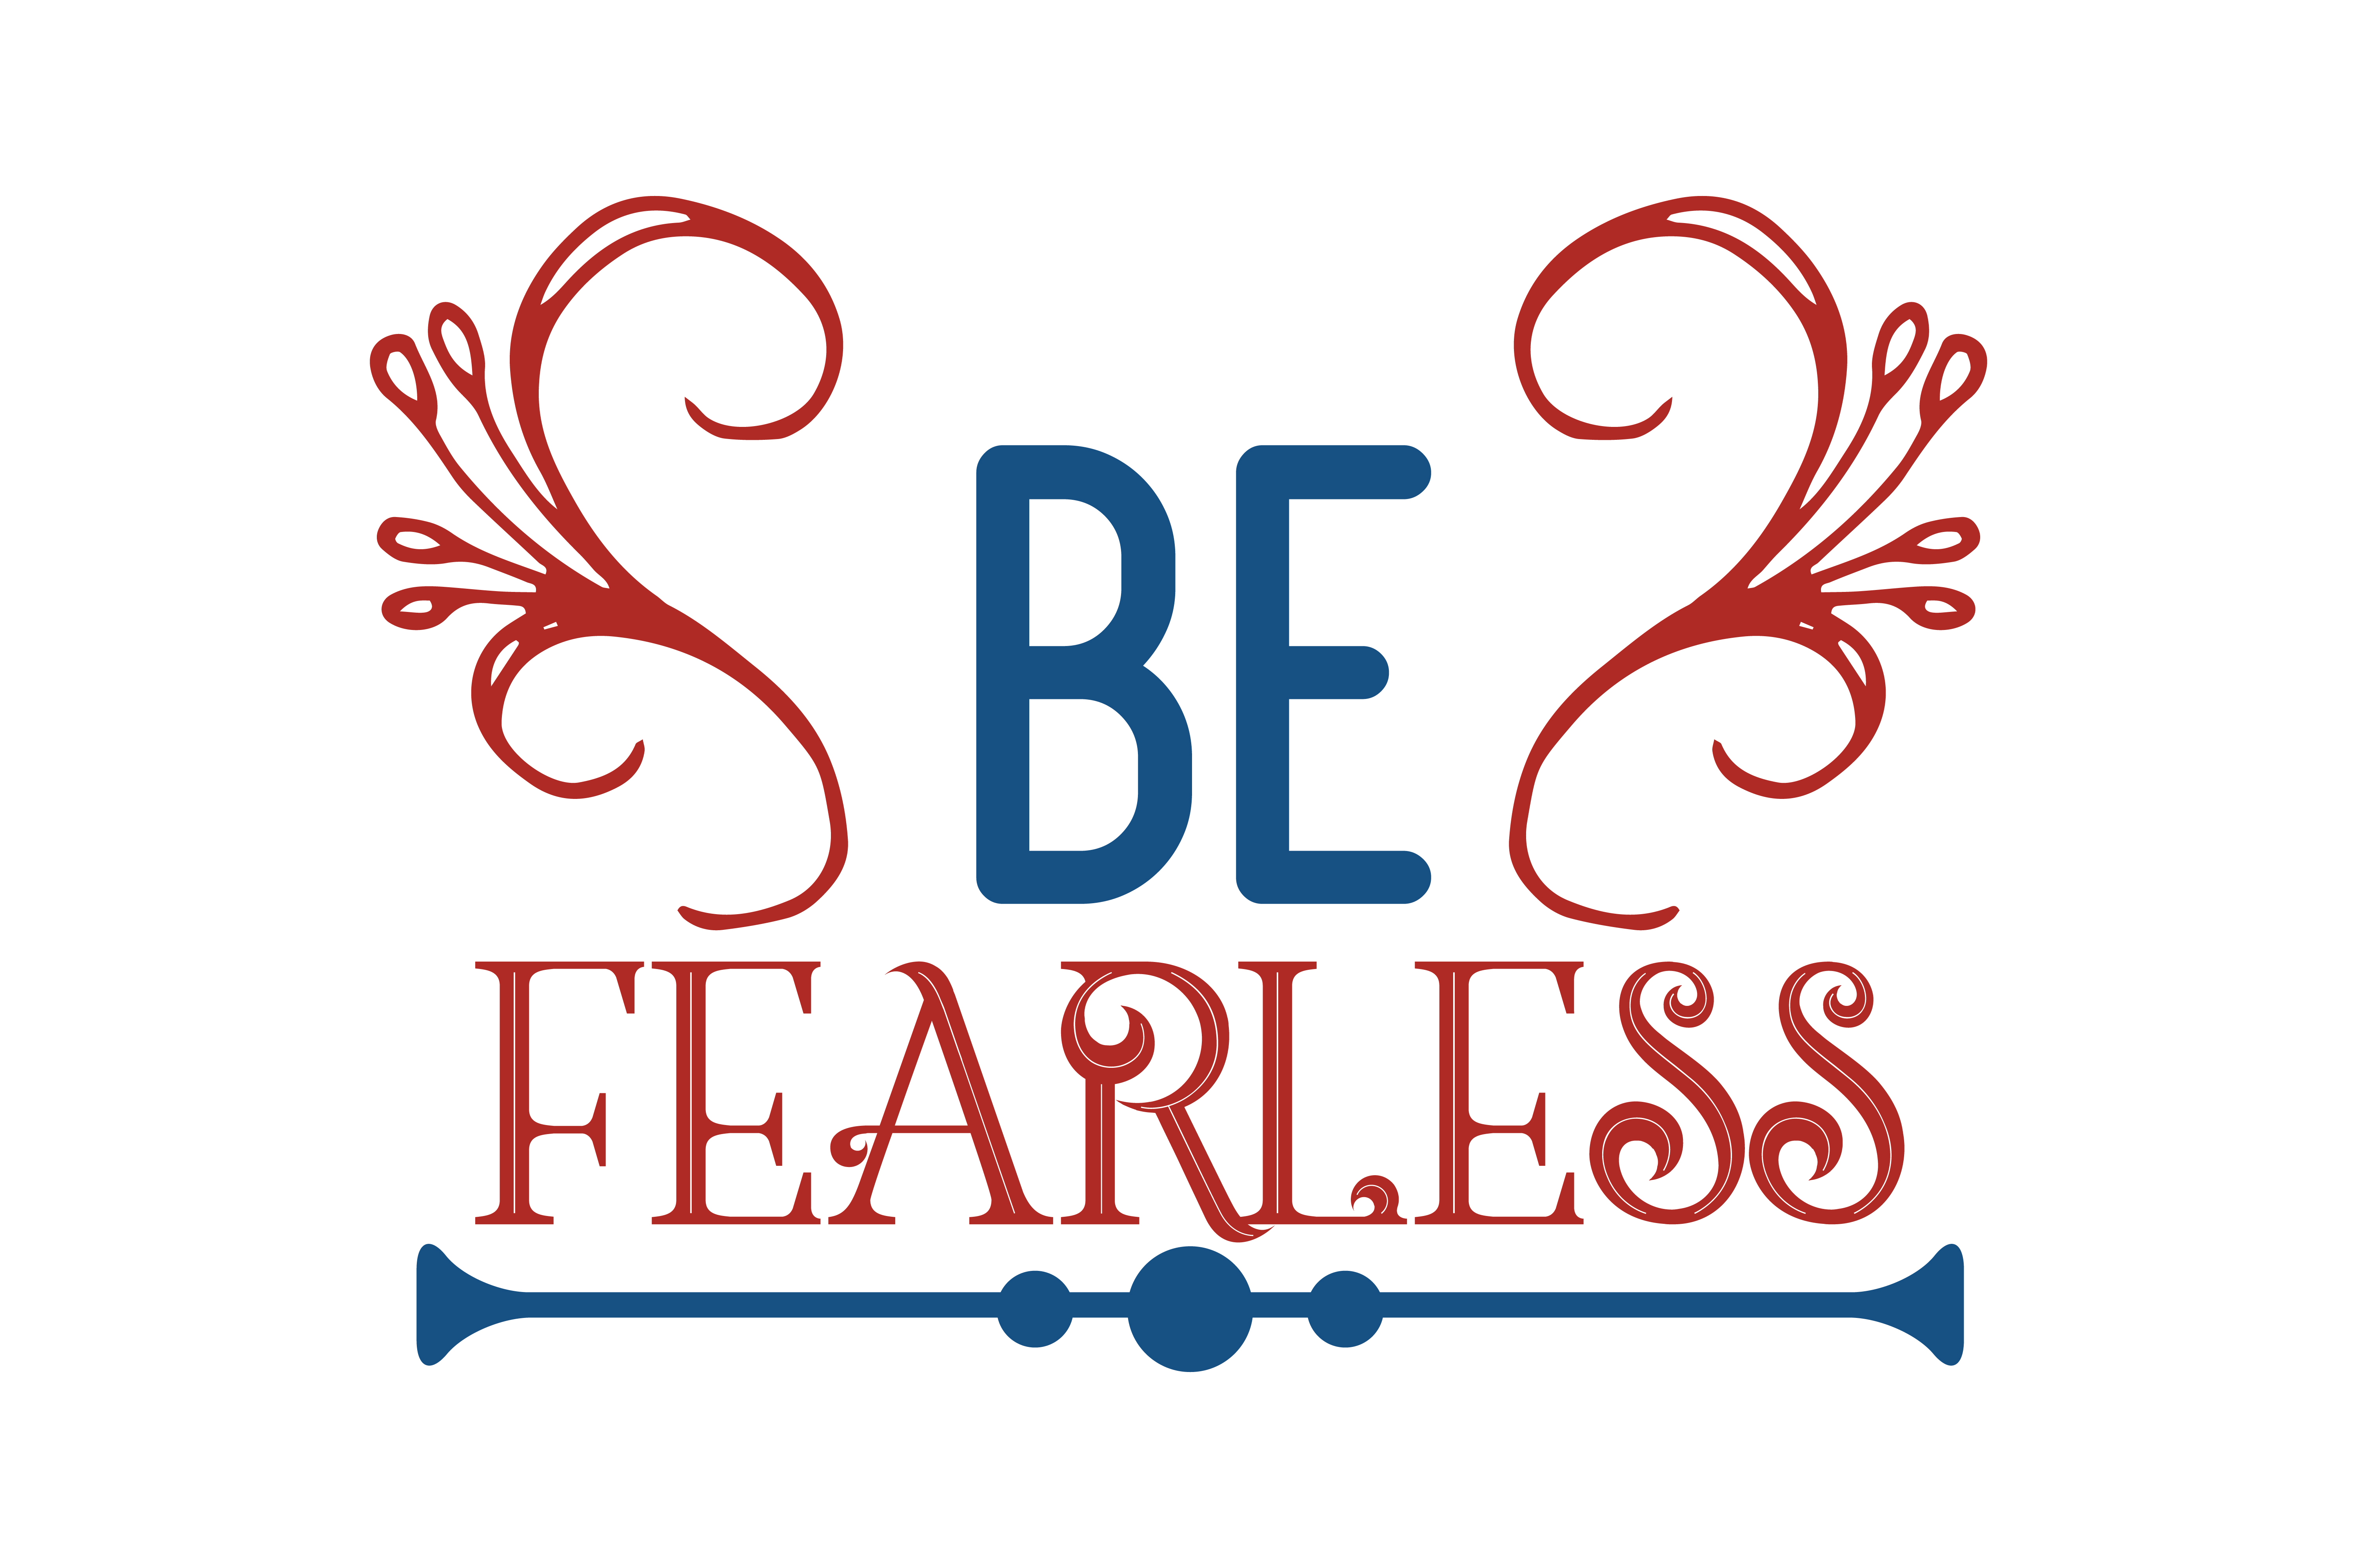 Download Free Be Fearless Quote Graphic By Thelucky Creative Fabrica for Cricut Explore, Silhouette and other cutting machines.